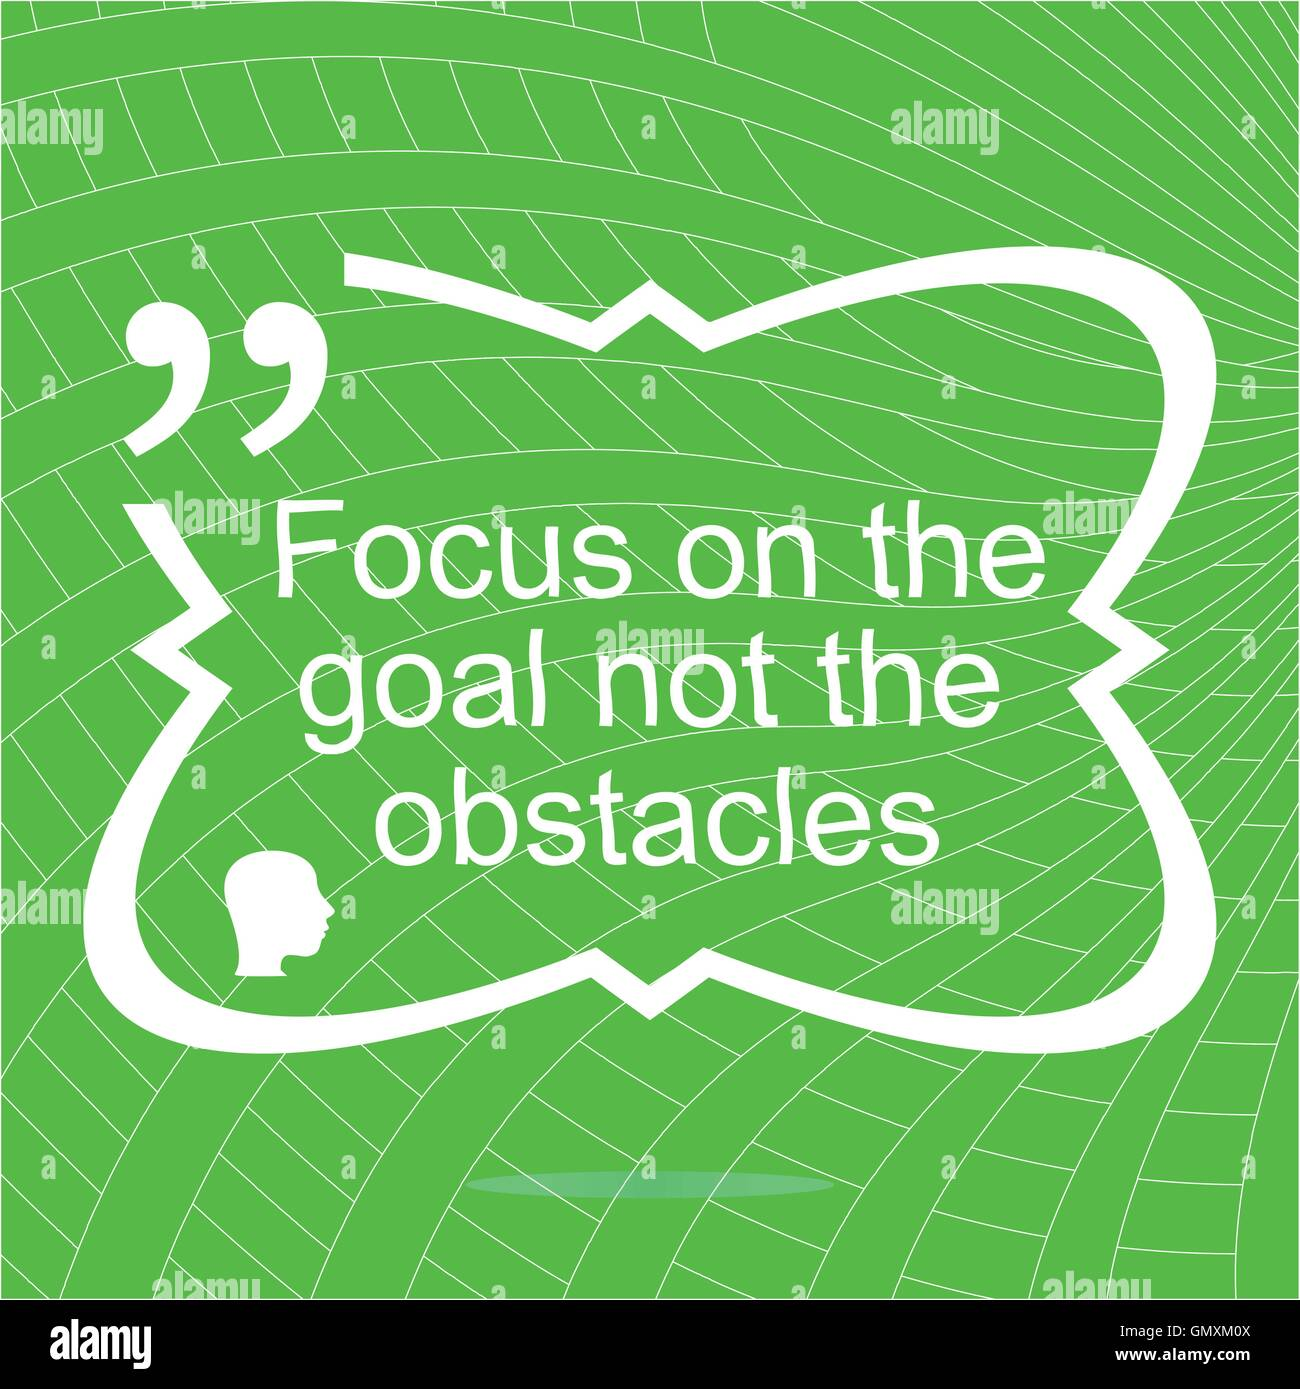 Inspirational motivational quote. Focus on the goal not the obstacles. Simple trendy design. Positive quote.  Vector - Stock Image